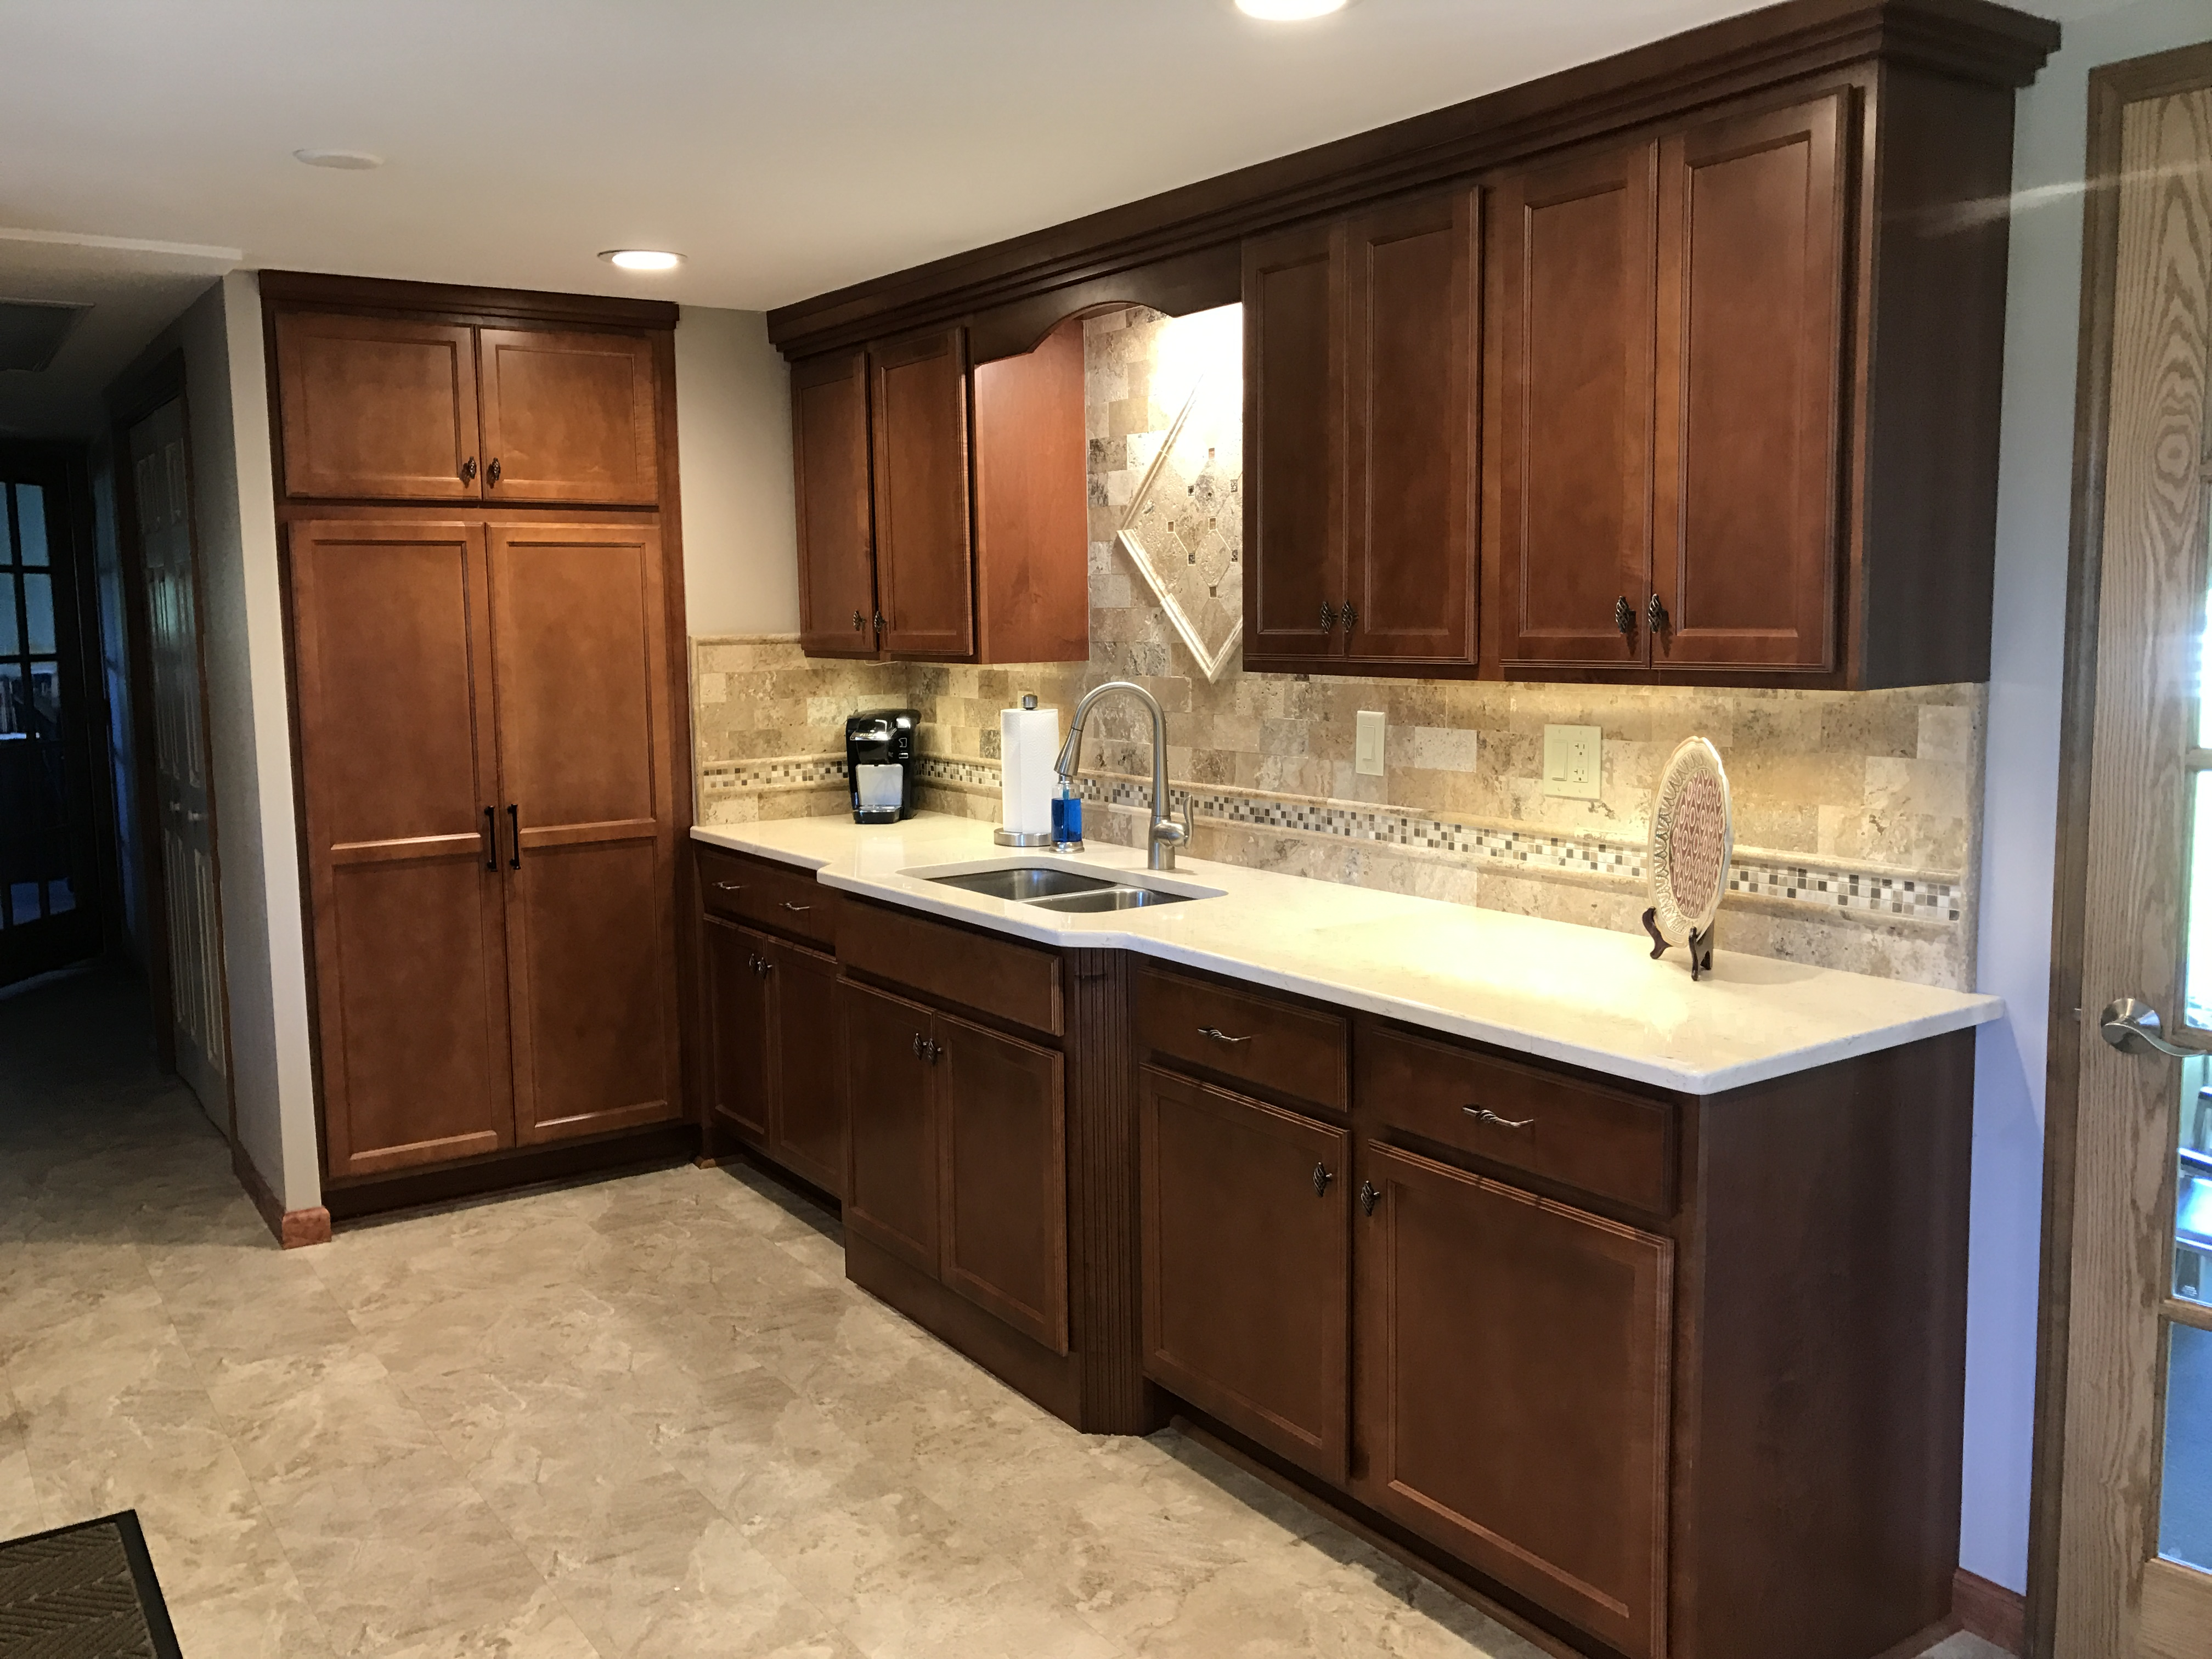 Kitchen and bath showroom thereu0027s only one factory for Bathroom showrooms boston area